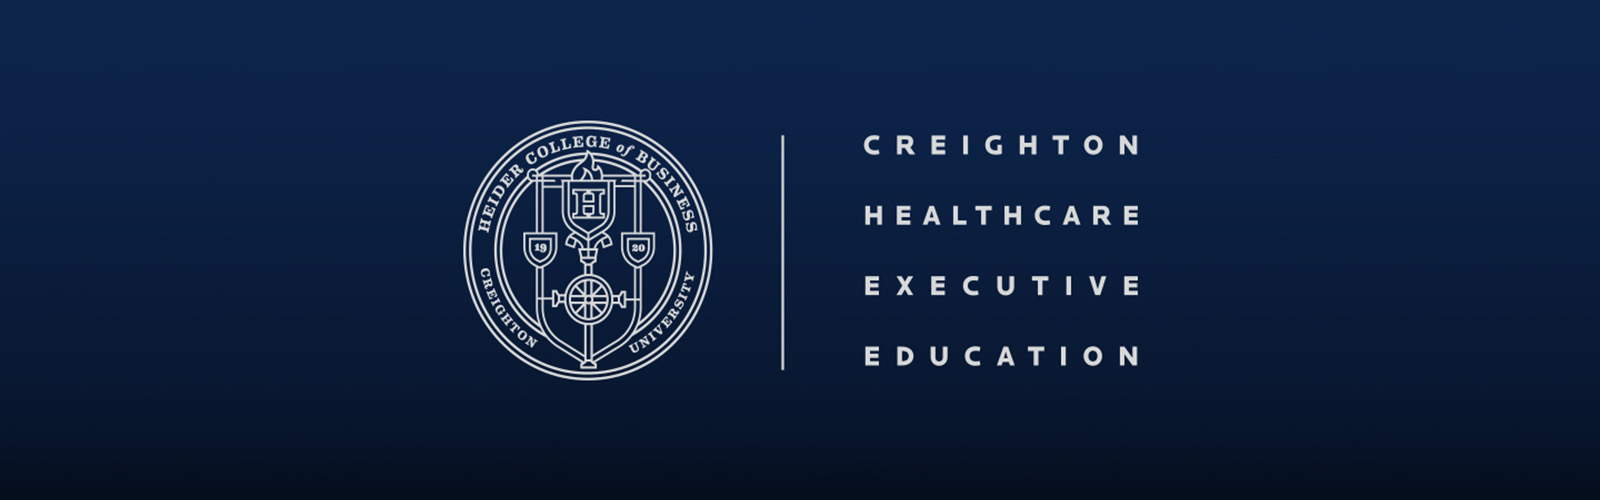 Creighton Healthcare Executive Education graphic